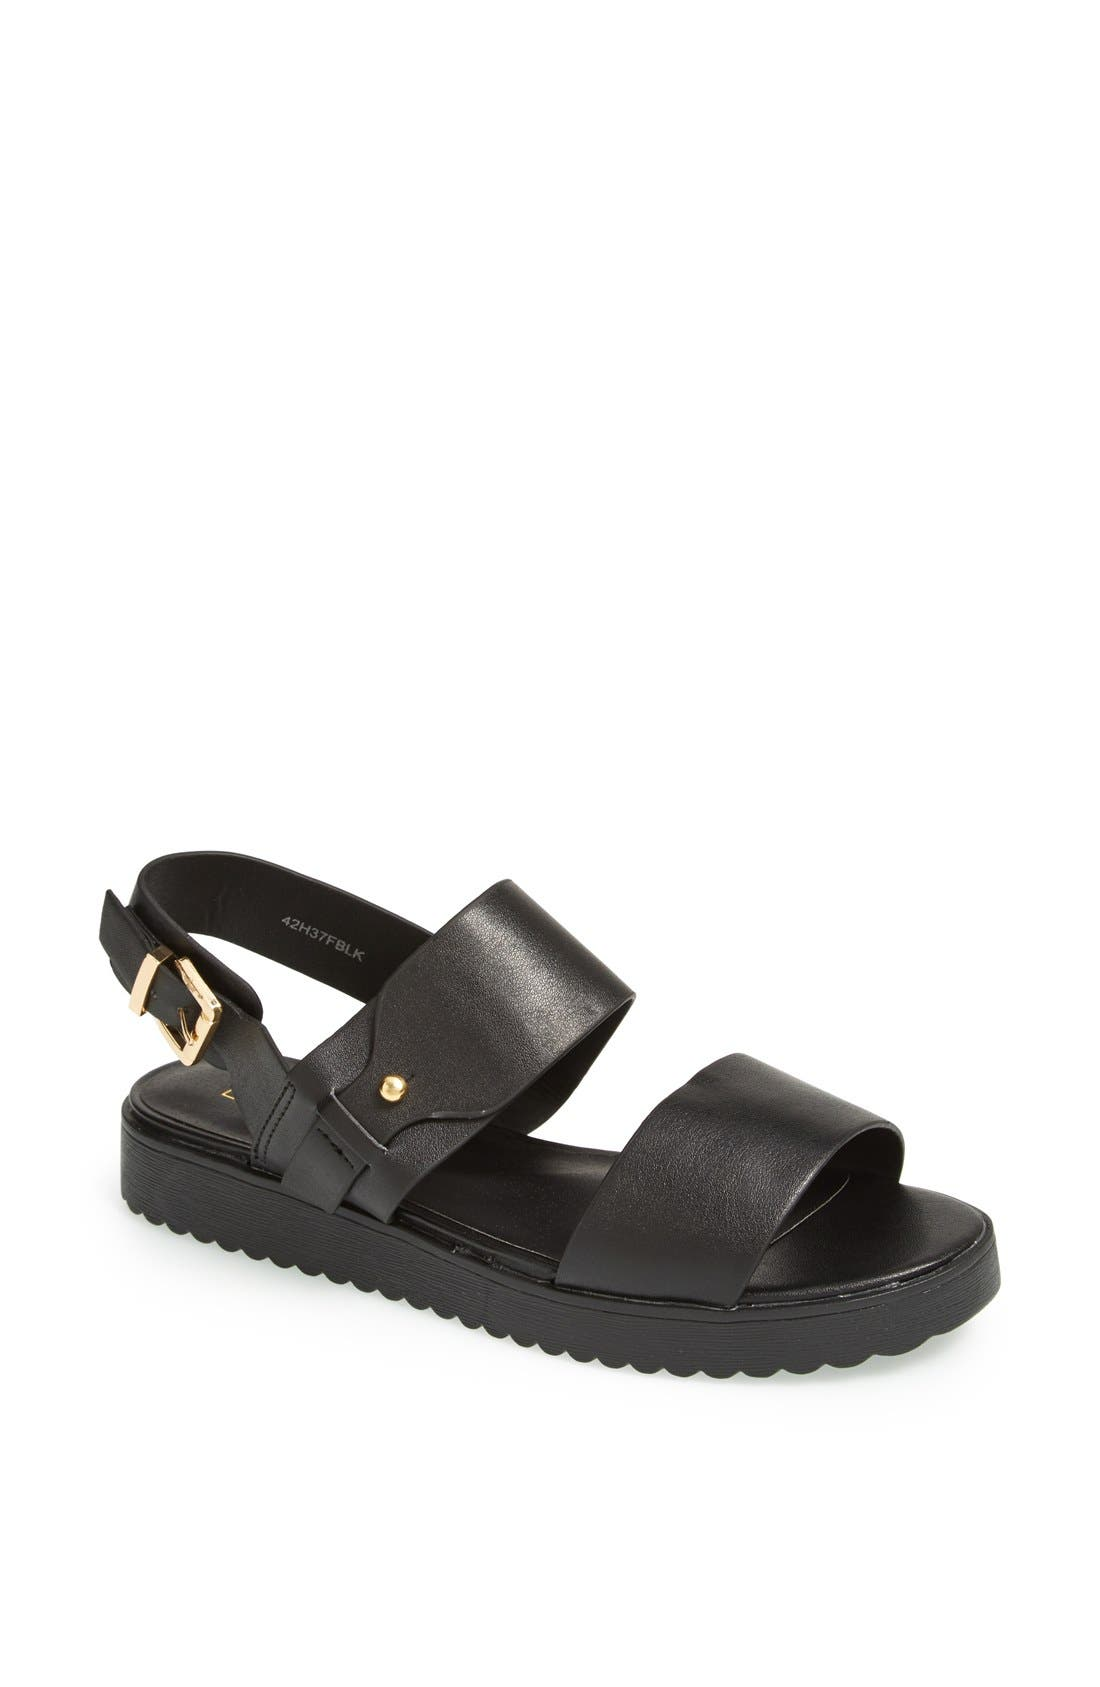 Alternate Image 1 Selected - Topshop 'Hydrate' Faux Leather Sandals